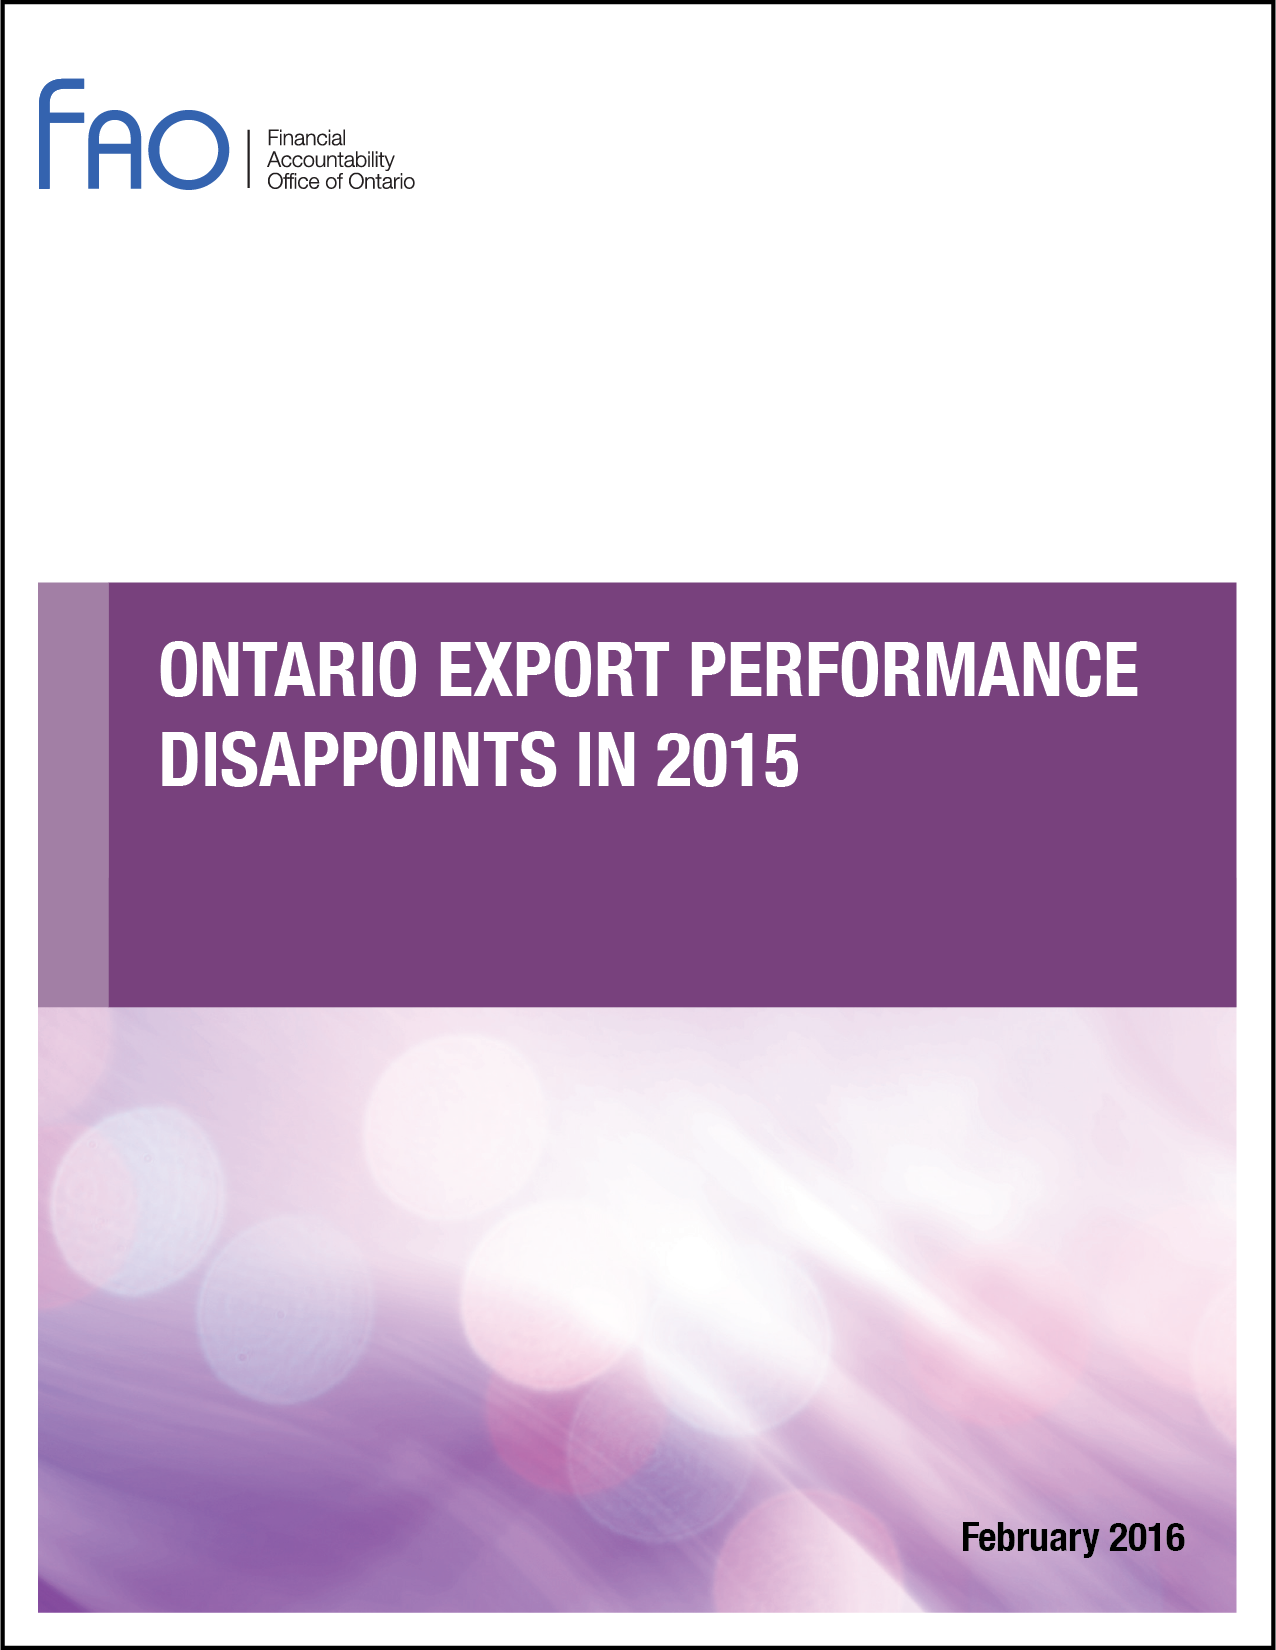 Ontario Export Performance Disappoints in 2015